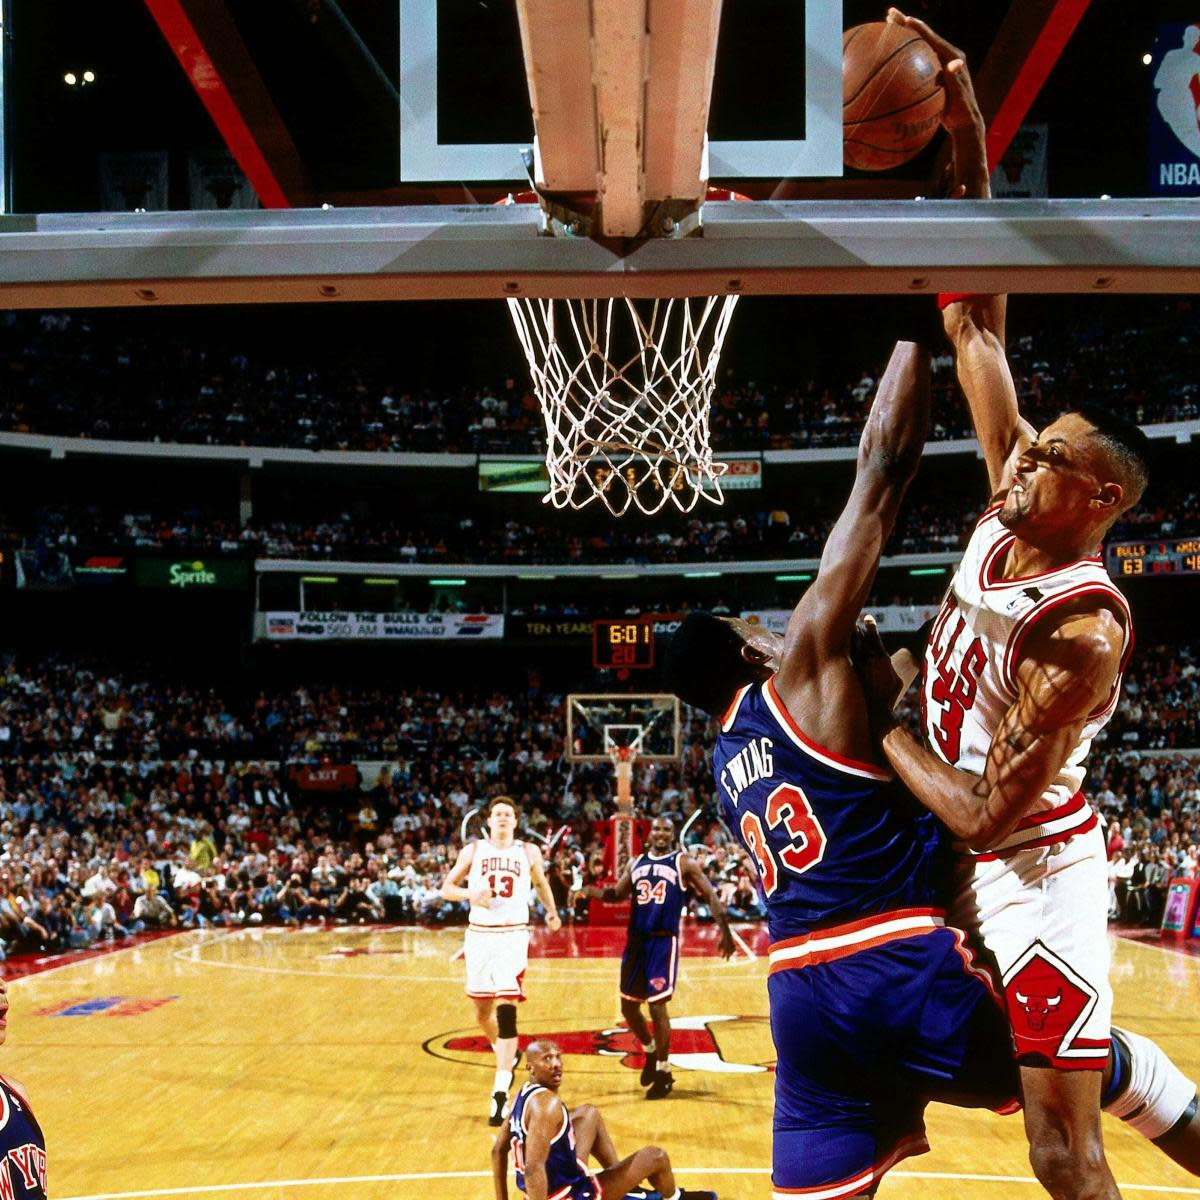 Scottie Pippen shows no fear in dunking over Patrick Ewing.